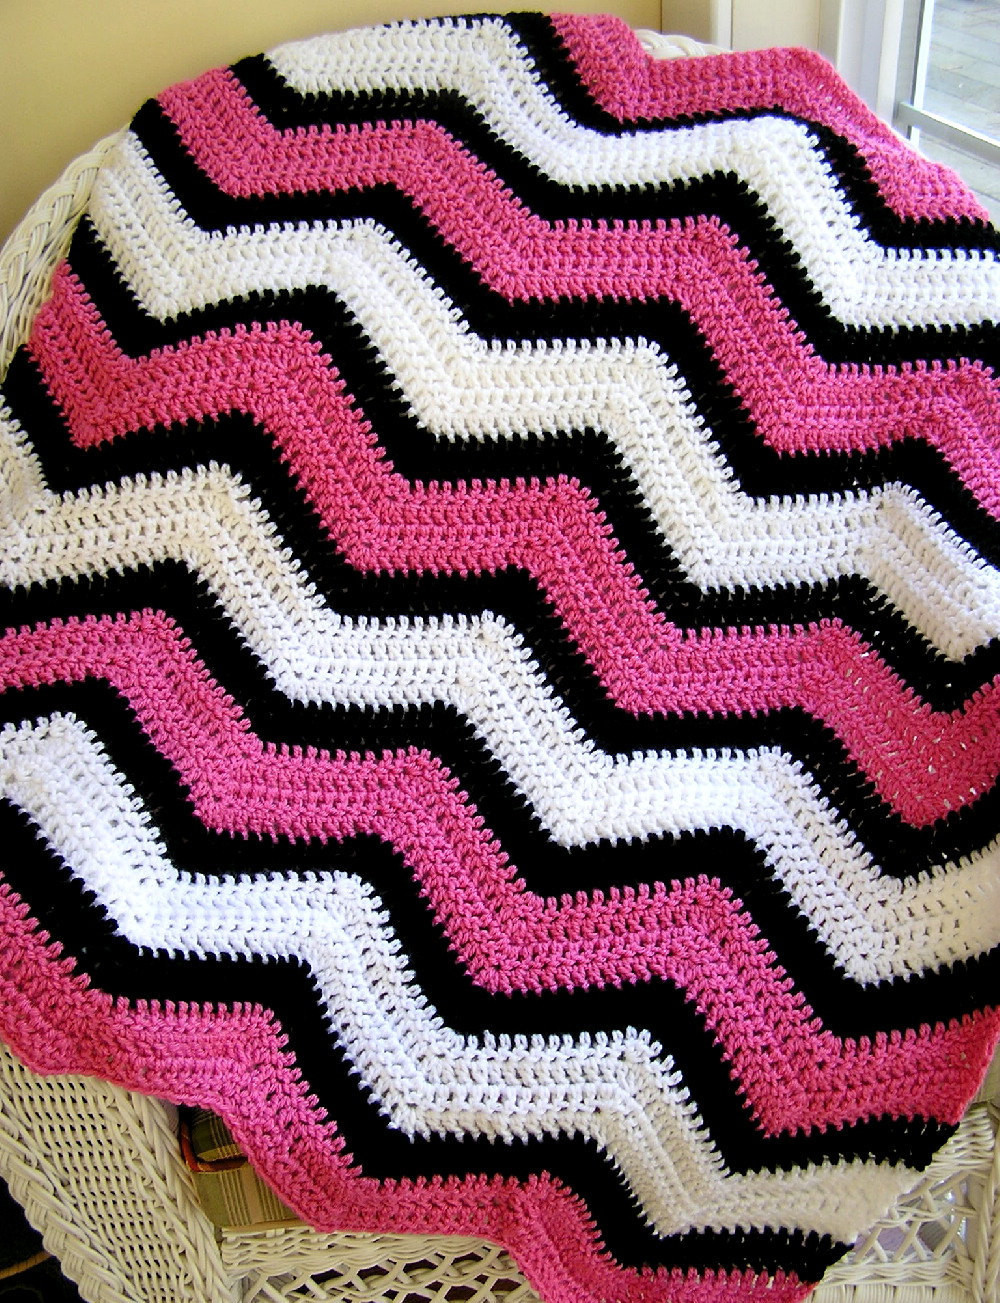 Chevron Baby Blanket Awesome New Chevron Zig Zag Baby Blanket Crochet Wrap Afghan Lap Of Attractive 49 Pics Chevron Baby Blanket